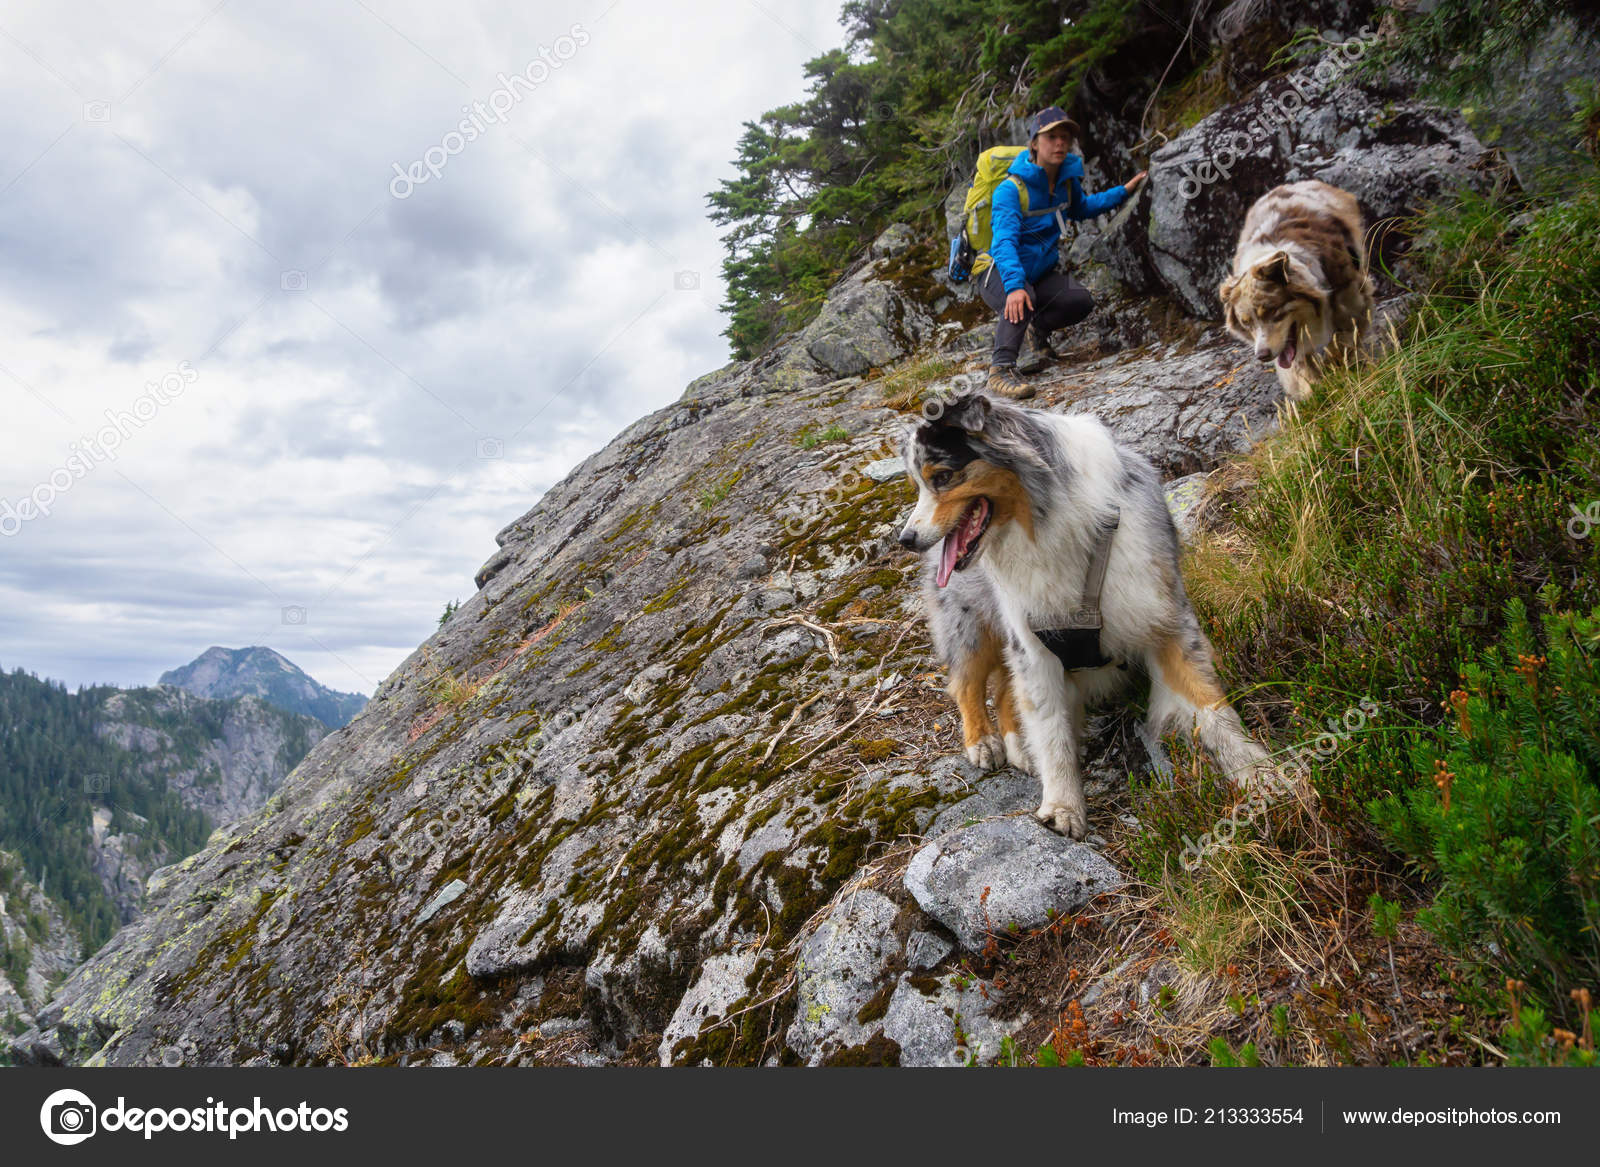 fbbfde102fa3 Girl Hiking Edge Cliff Dogs Cloudy Summer Day Taken Howe — Stock Photo